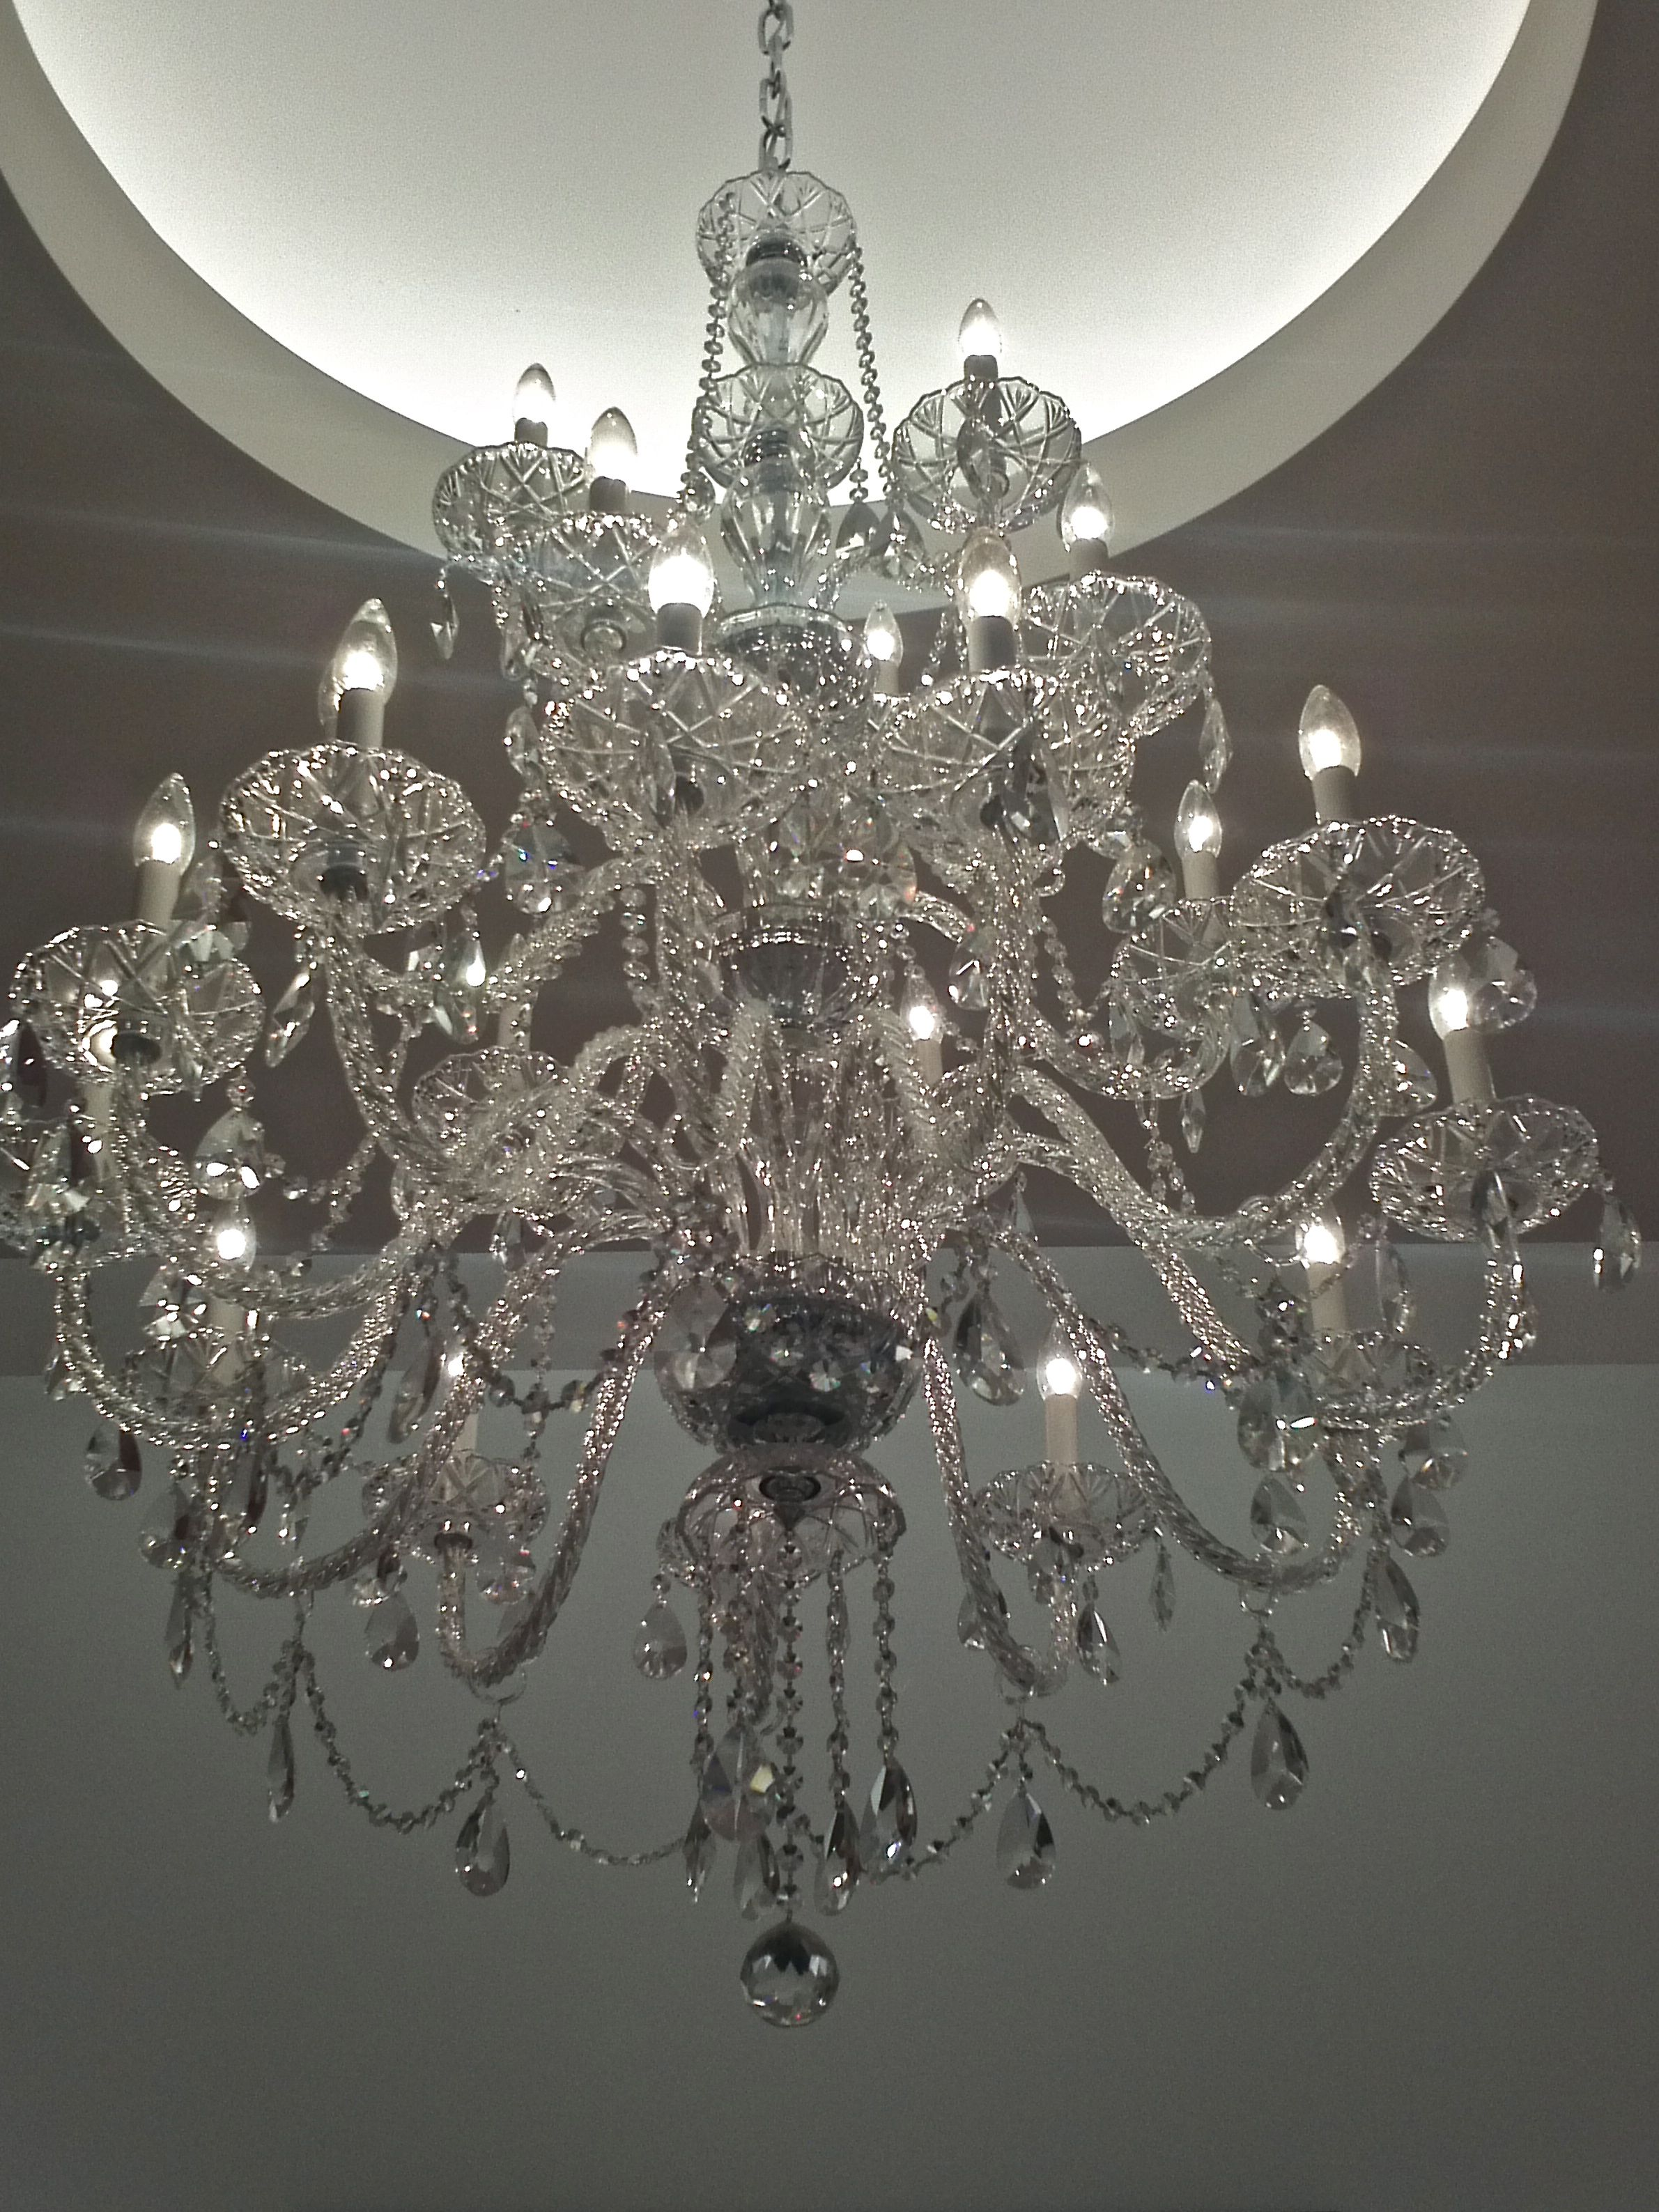 I love the chandeliers at charming charlie stores cc charm charlie